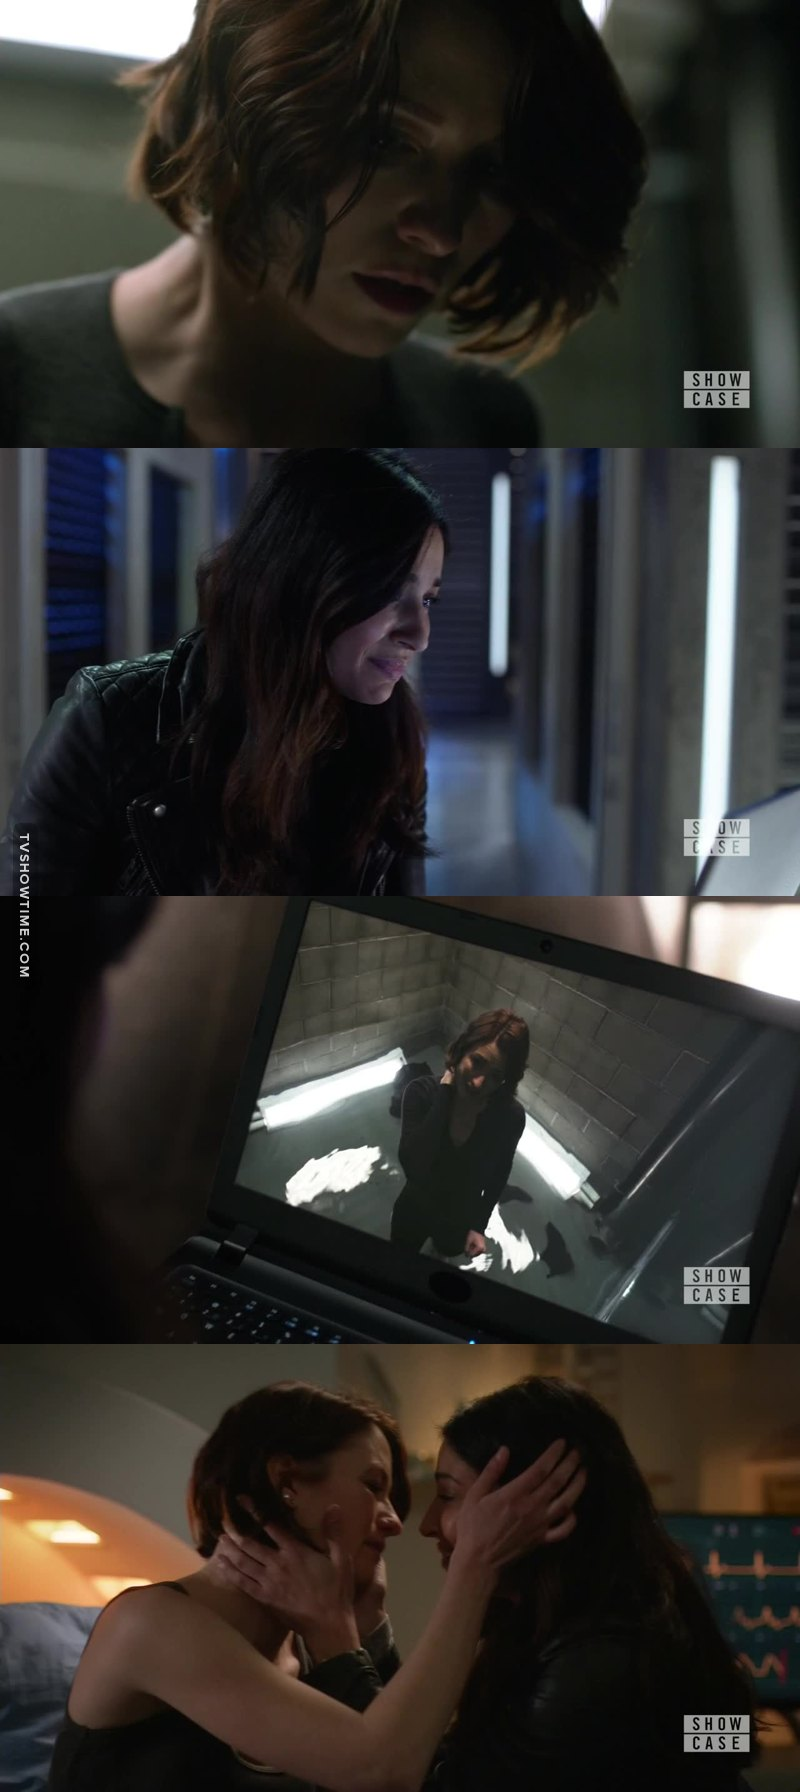 She had to just hold on. And she did cause she knew she was coming for her. 😍 #sanvers #savealex